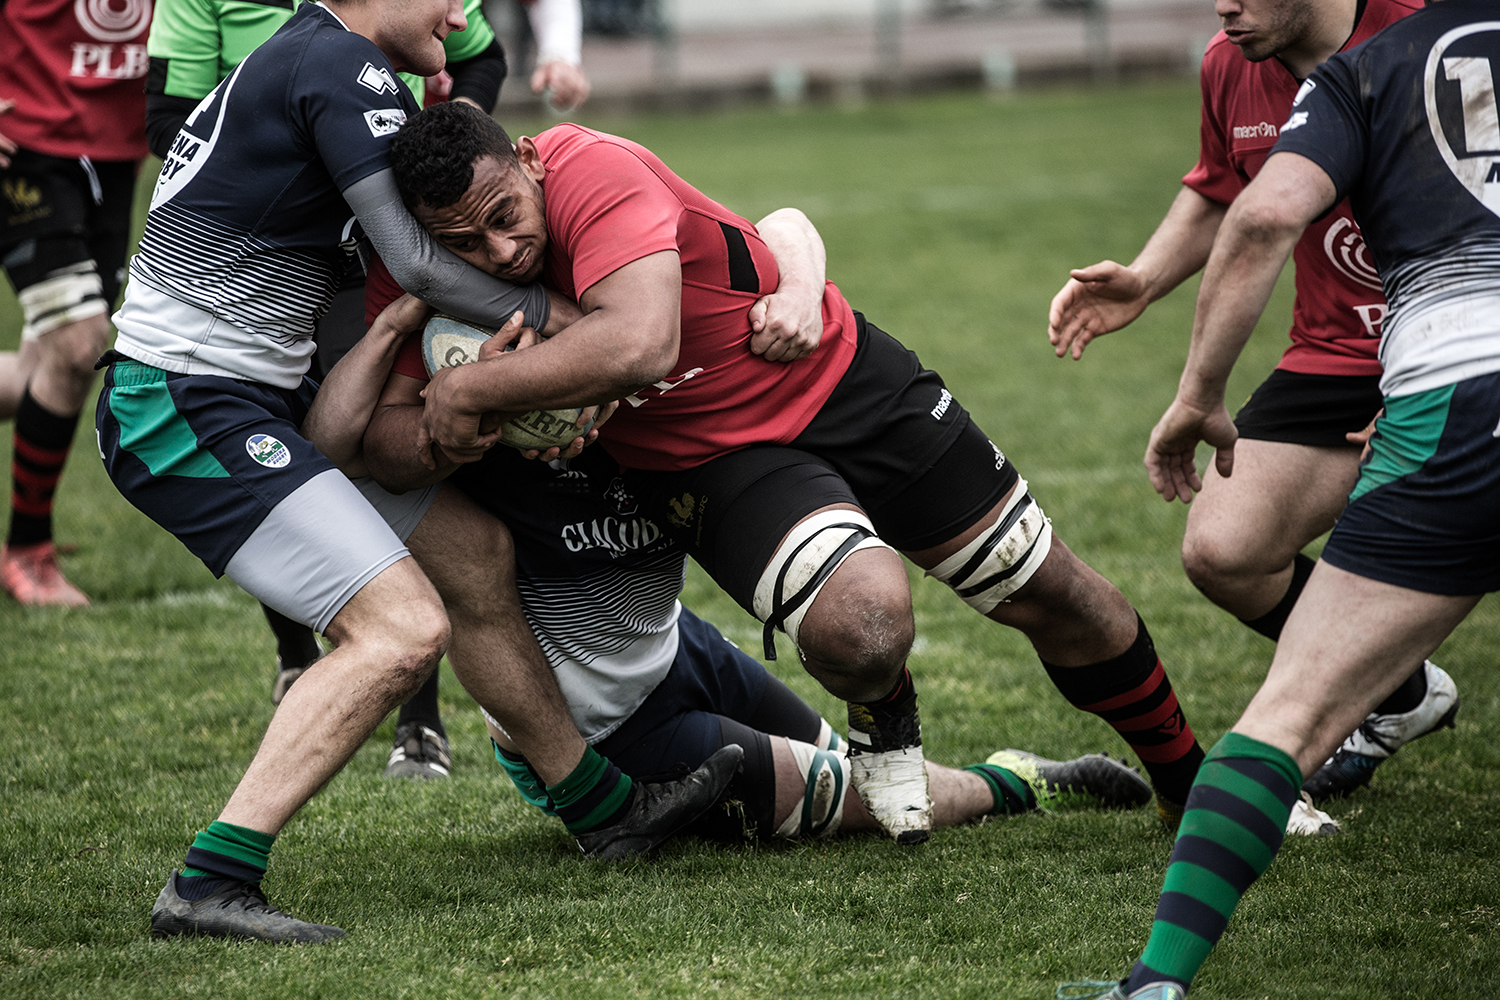 rugby_photograph_21.jpg